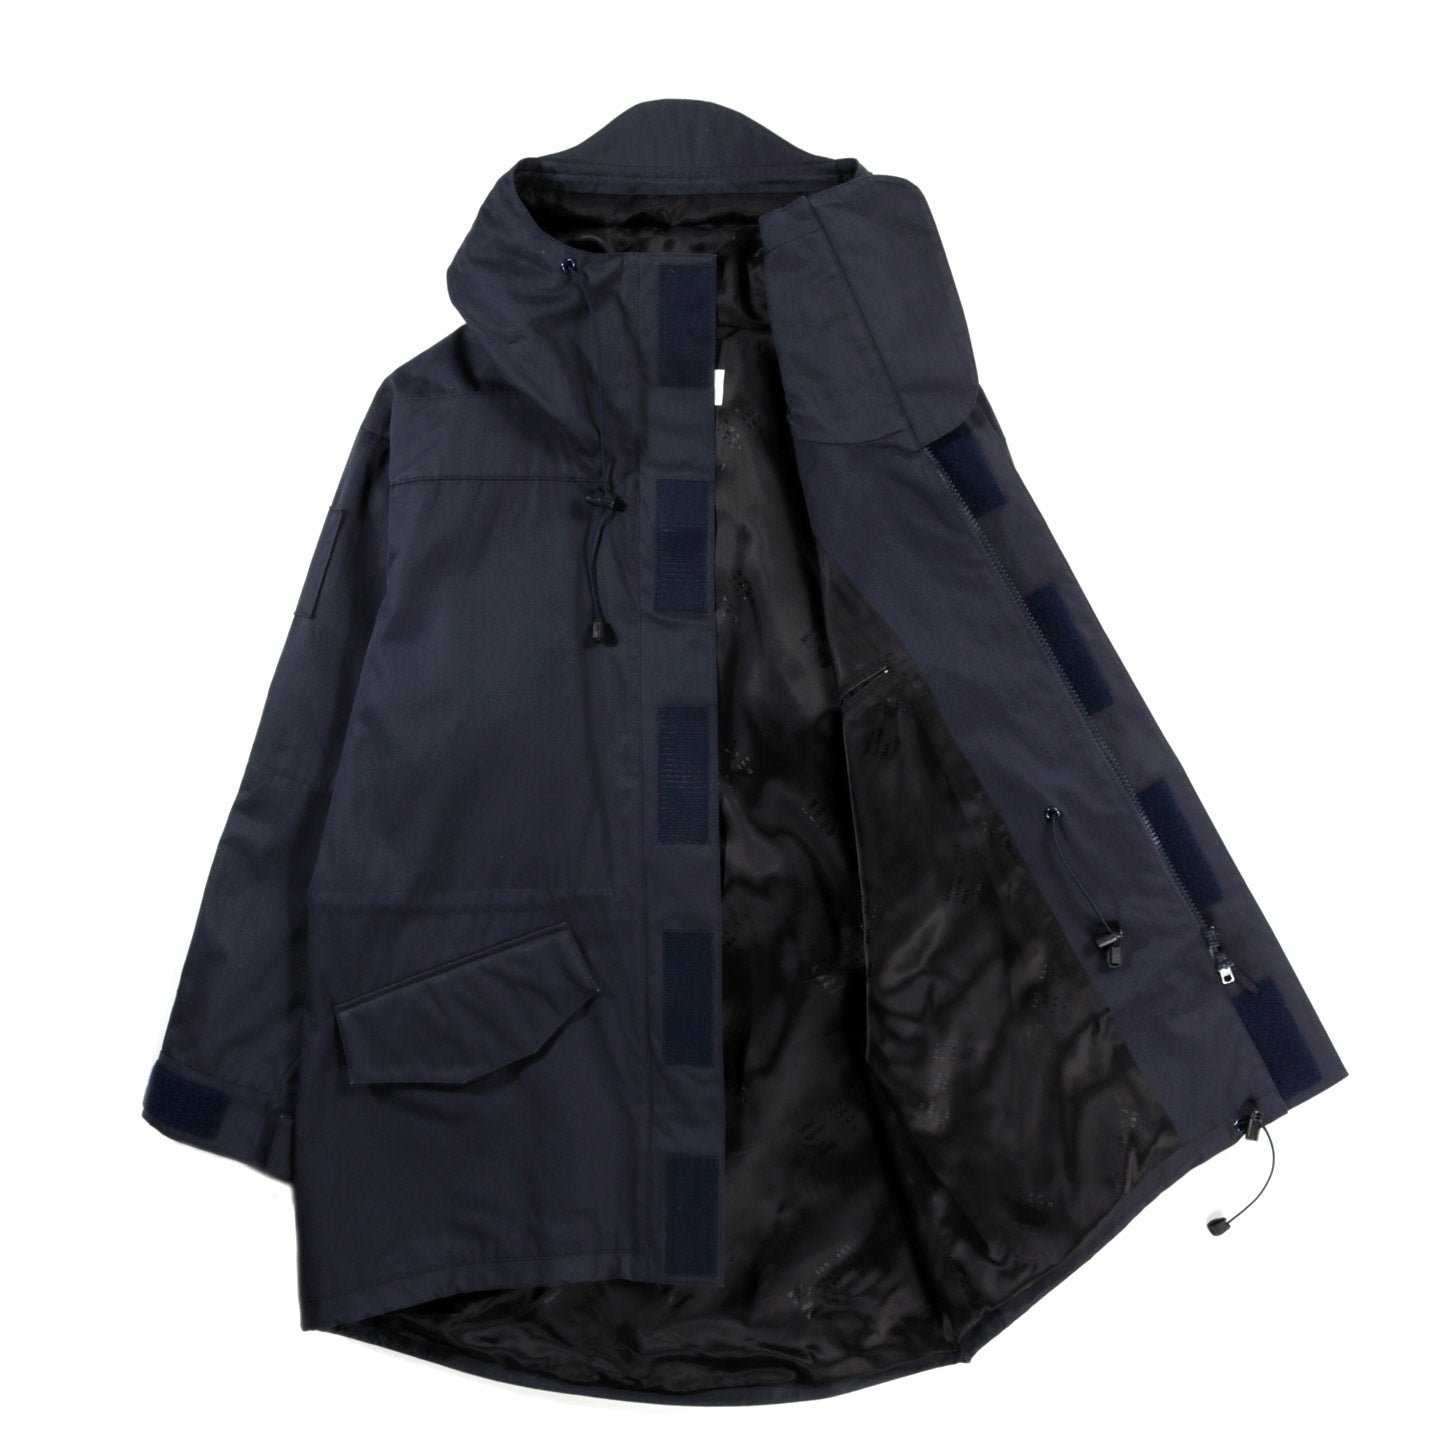 4SDESIGNS NF COAT NAVY BONDED COTTON